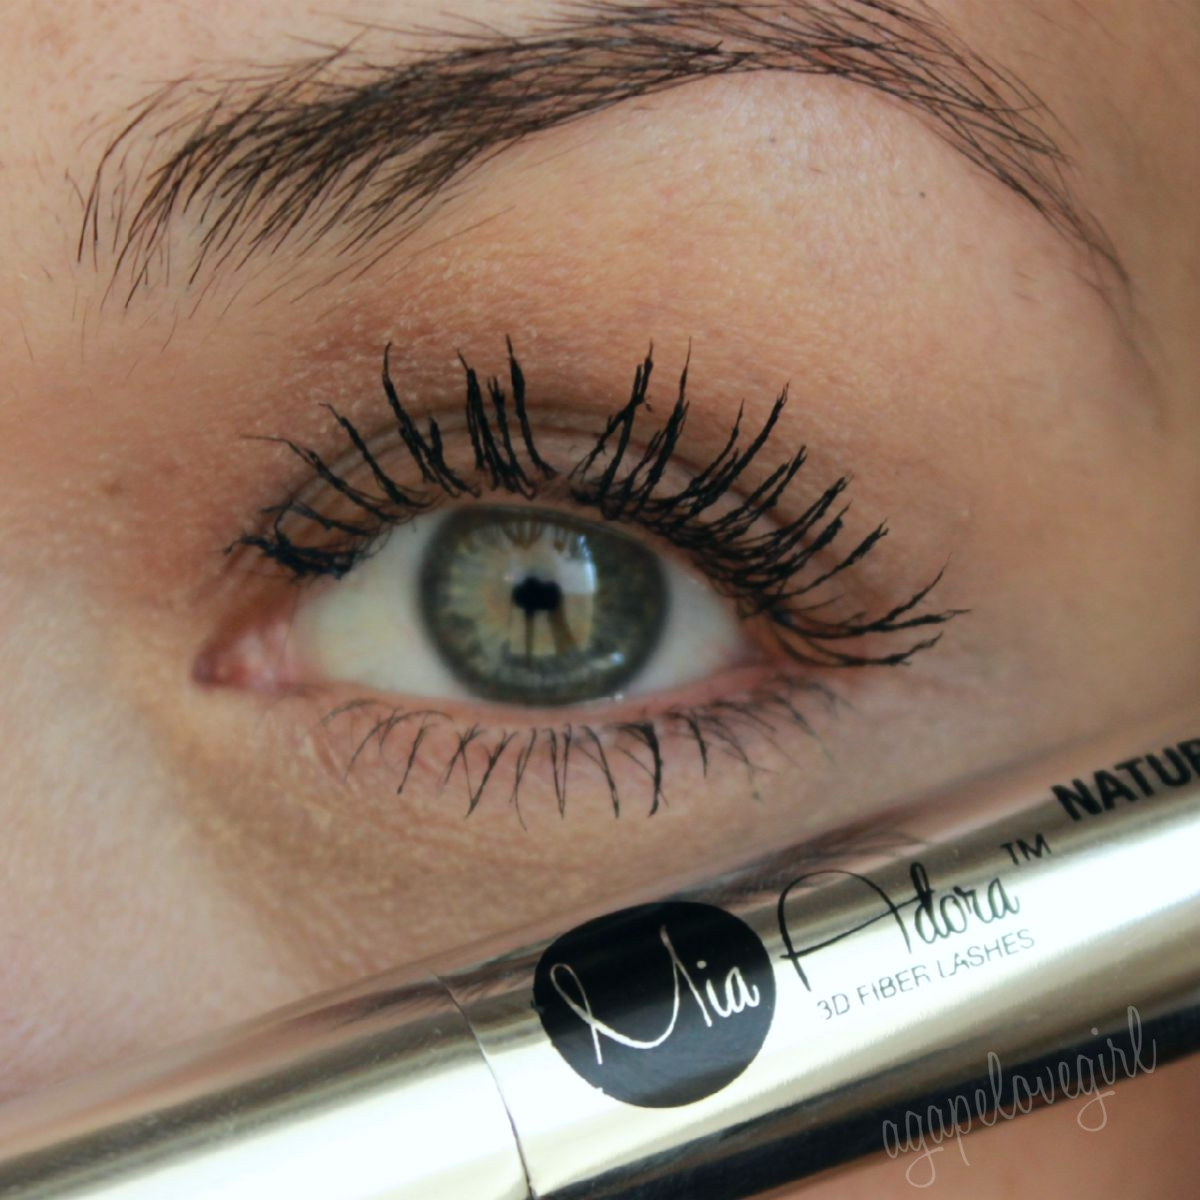 9ff390f3fa0 As for me, I prefer my lashes to look long, separated and more defined. To  get that with this particular mascara, it does take some practice and  getting ...